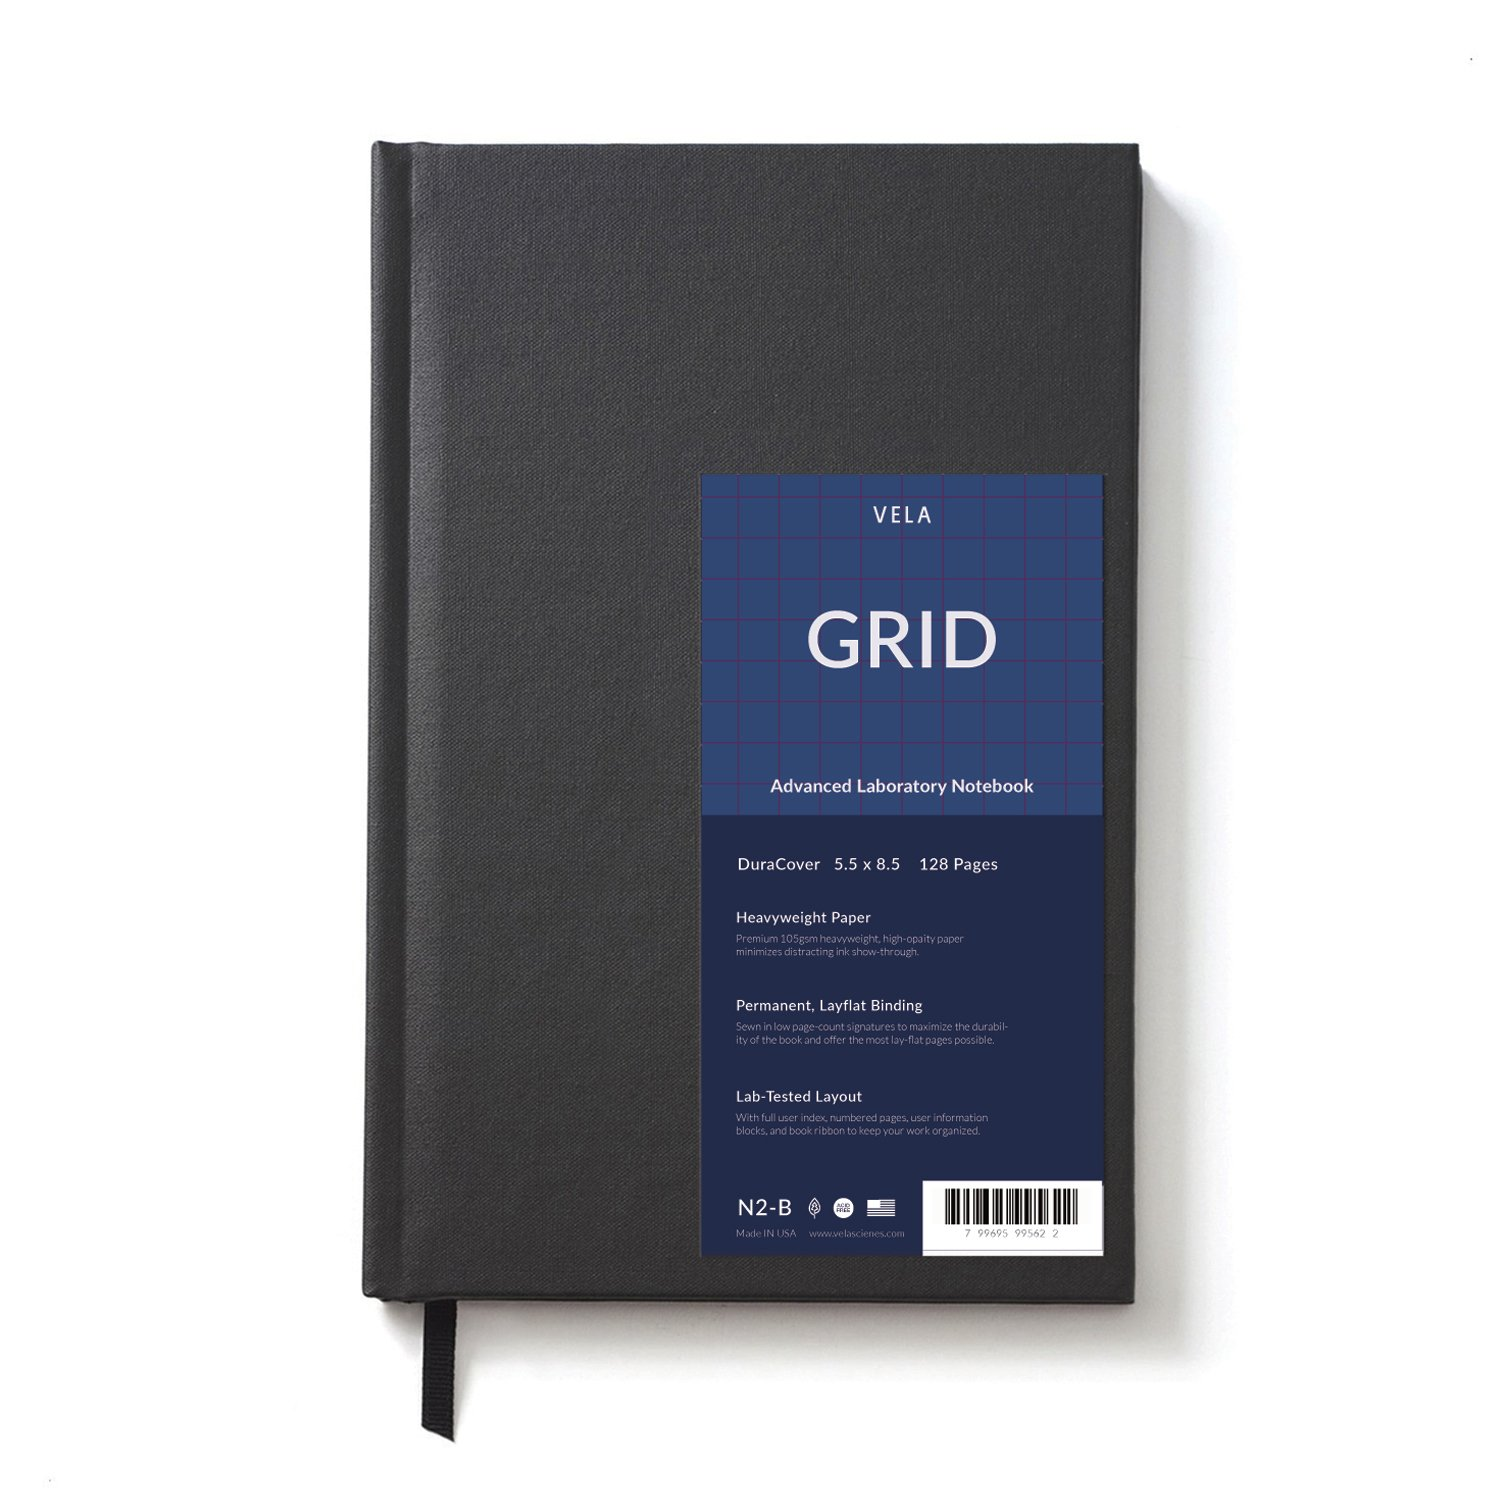 Vela Sciences Field DuraCover Notebook, 5.5 x 8.5 inches, 136 pages (1-Pack, Grid)